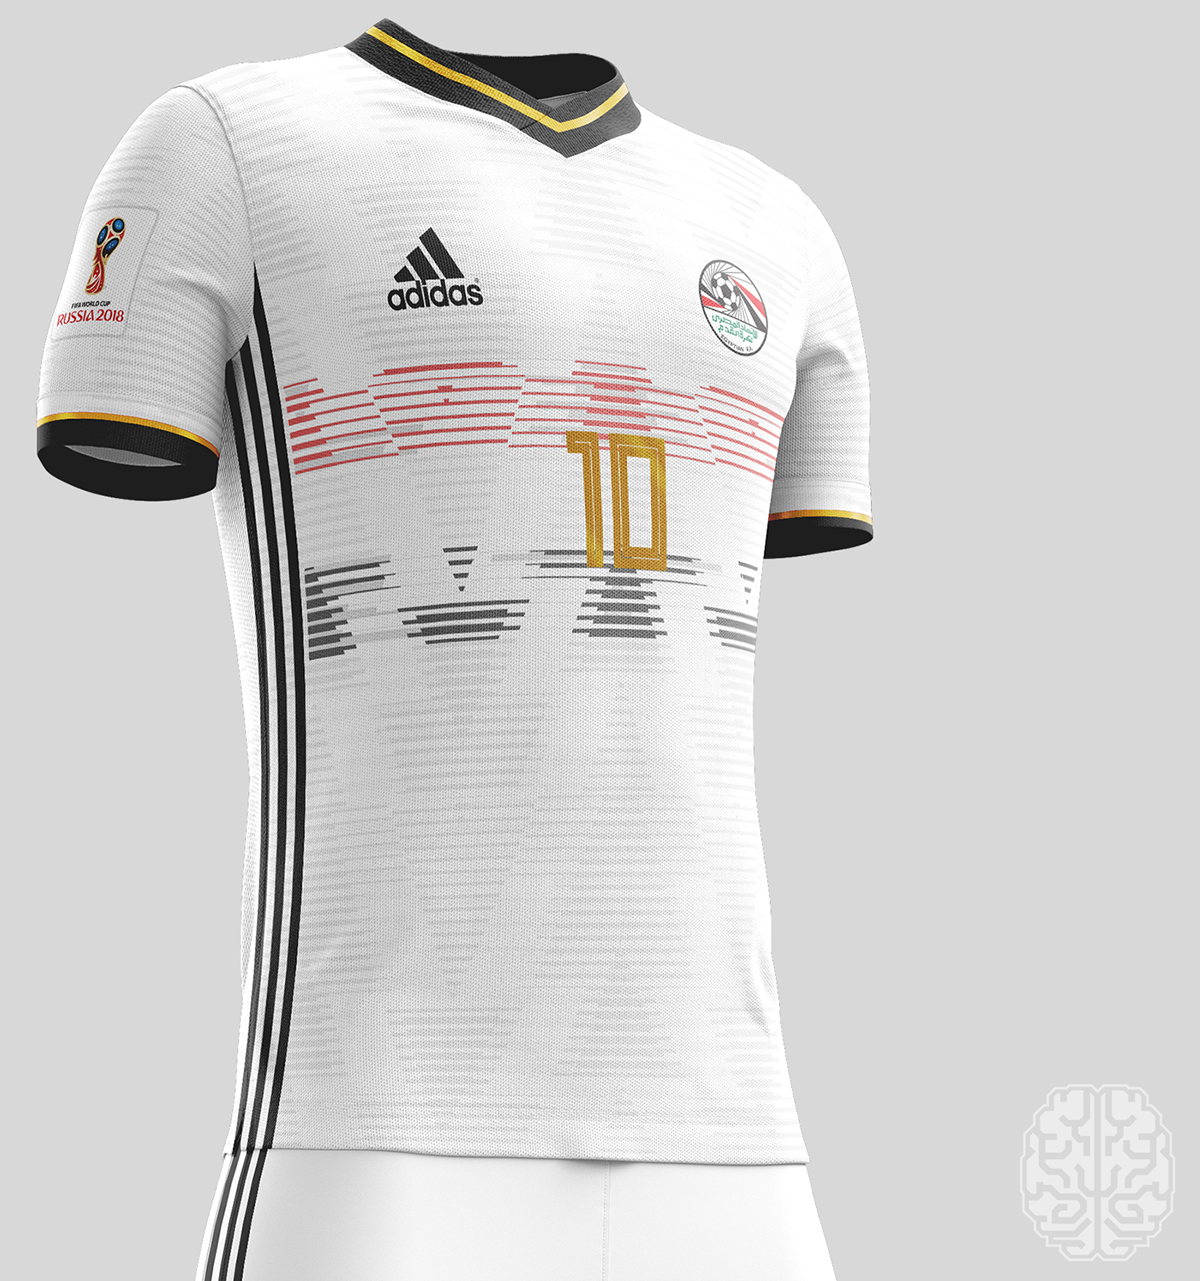 Fifa World Cup 2018 Kits Redesigned On Behance In 2020 World Cup 2018 Fifa World Cup Fifa